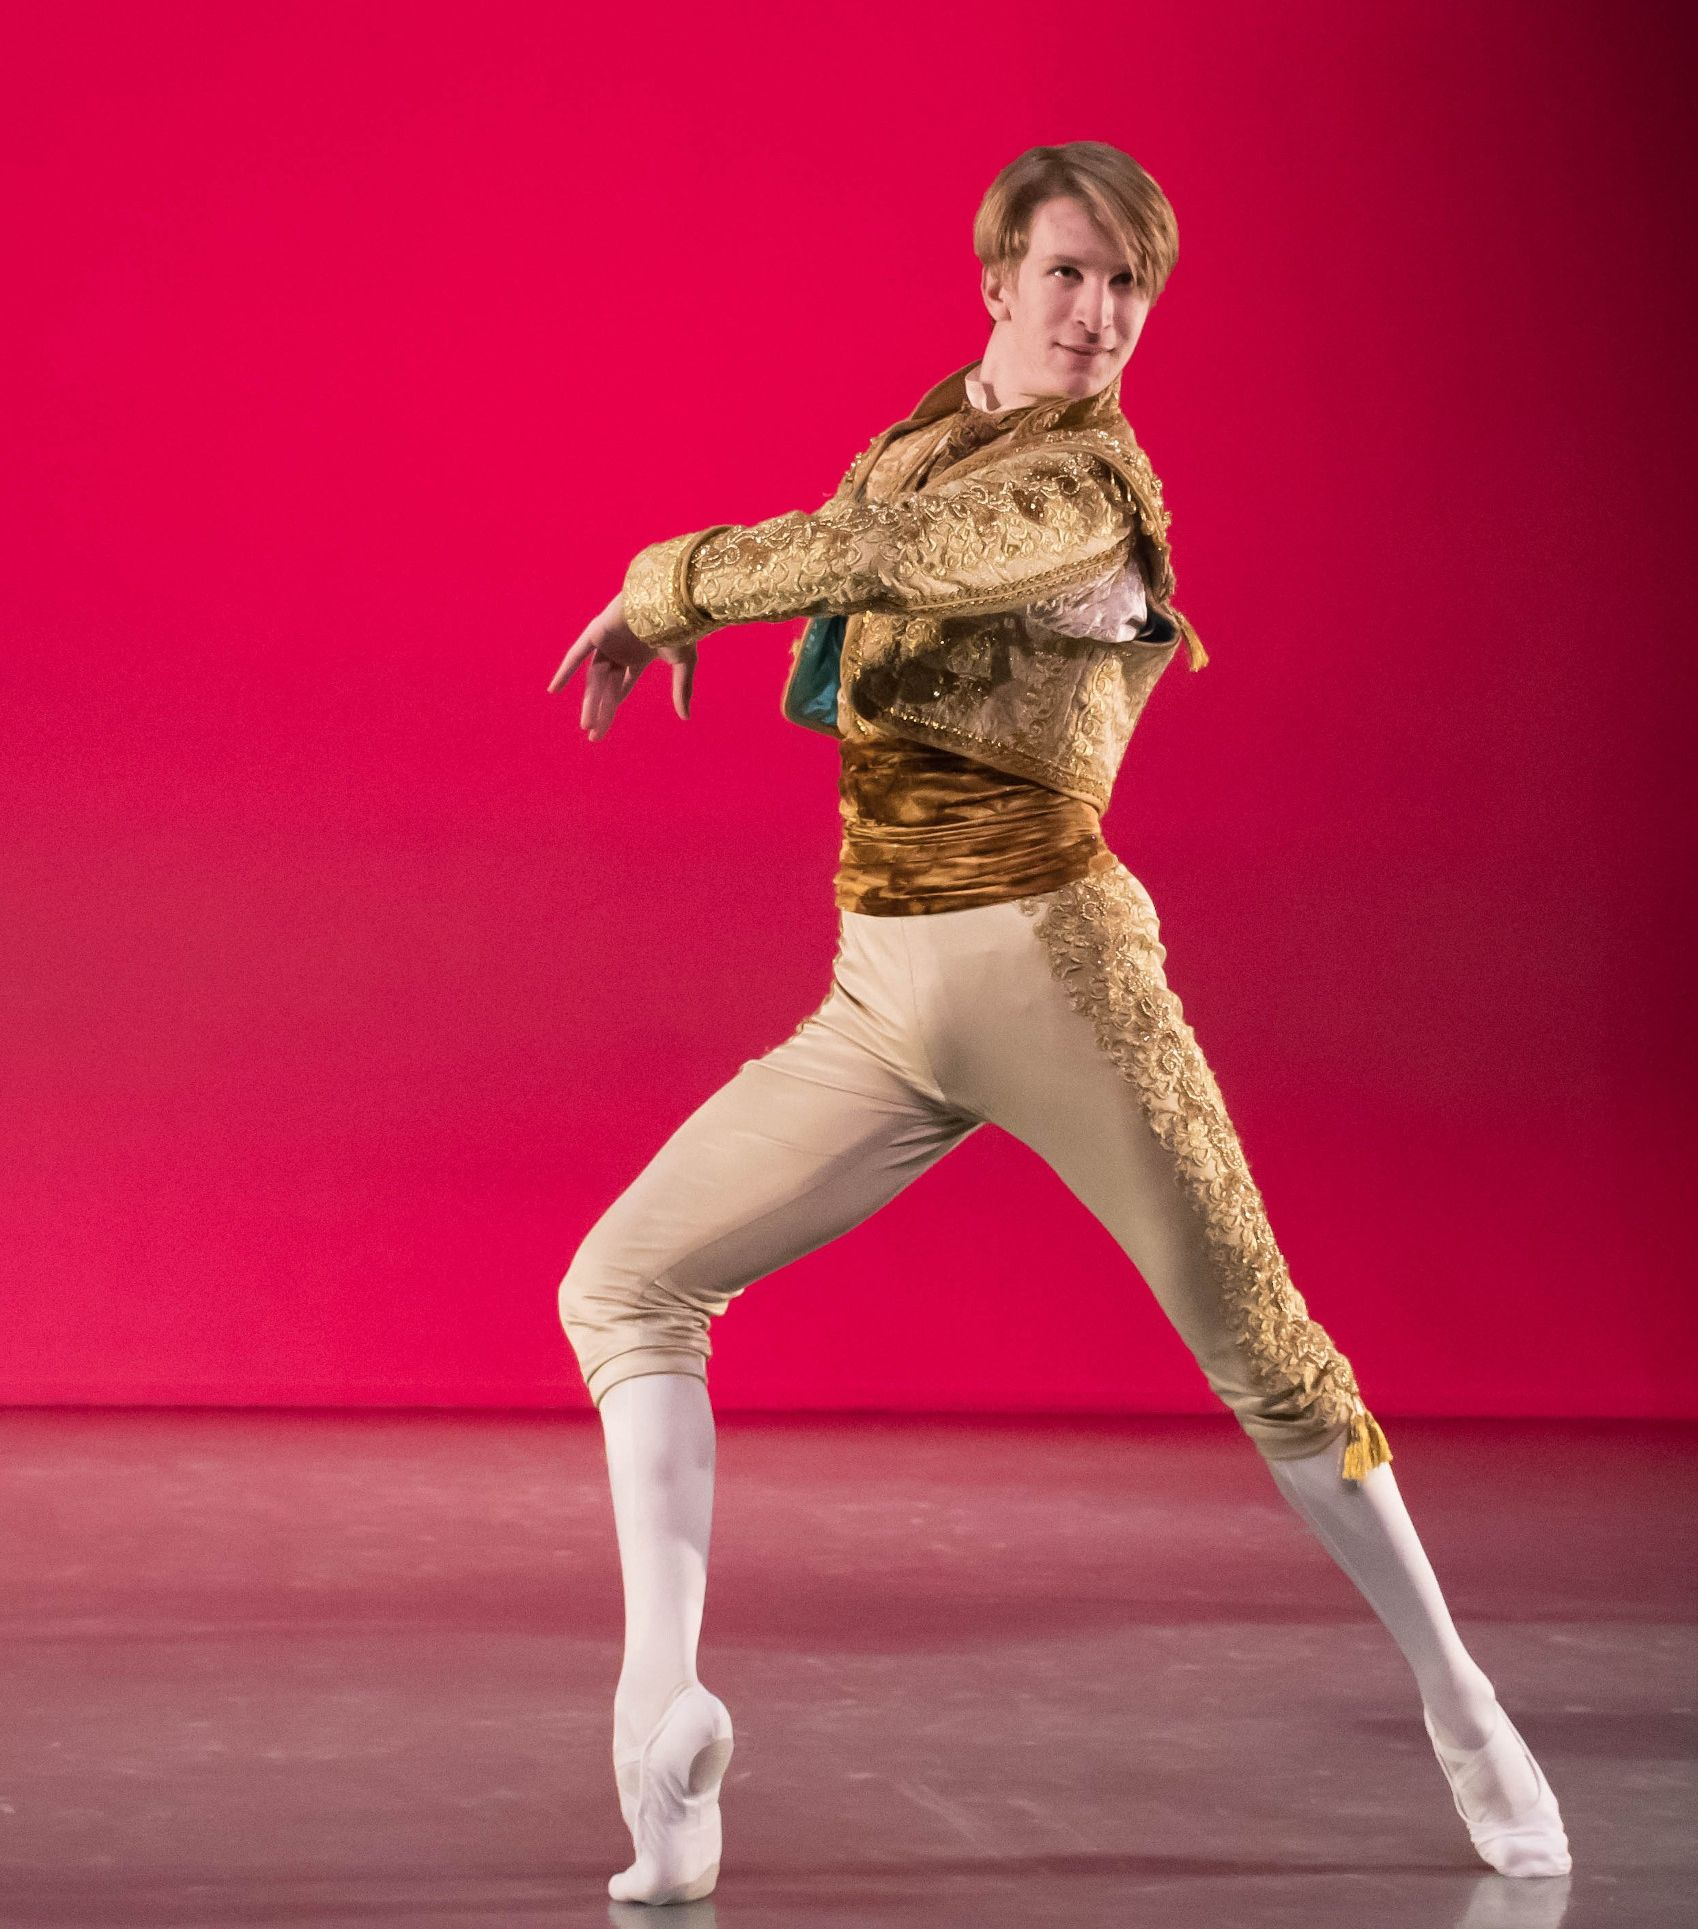 A male ballet dancer performs on stage